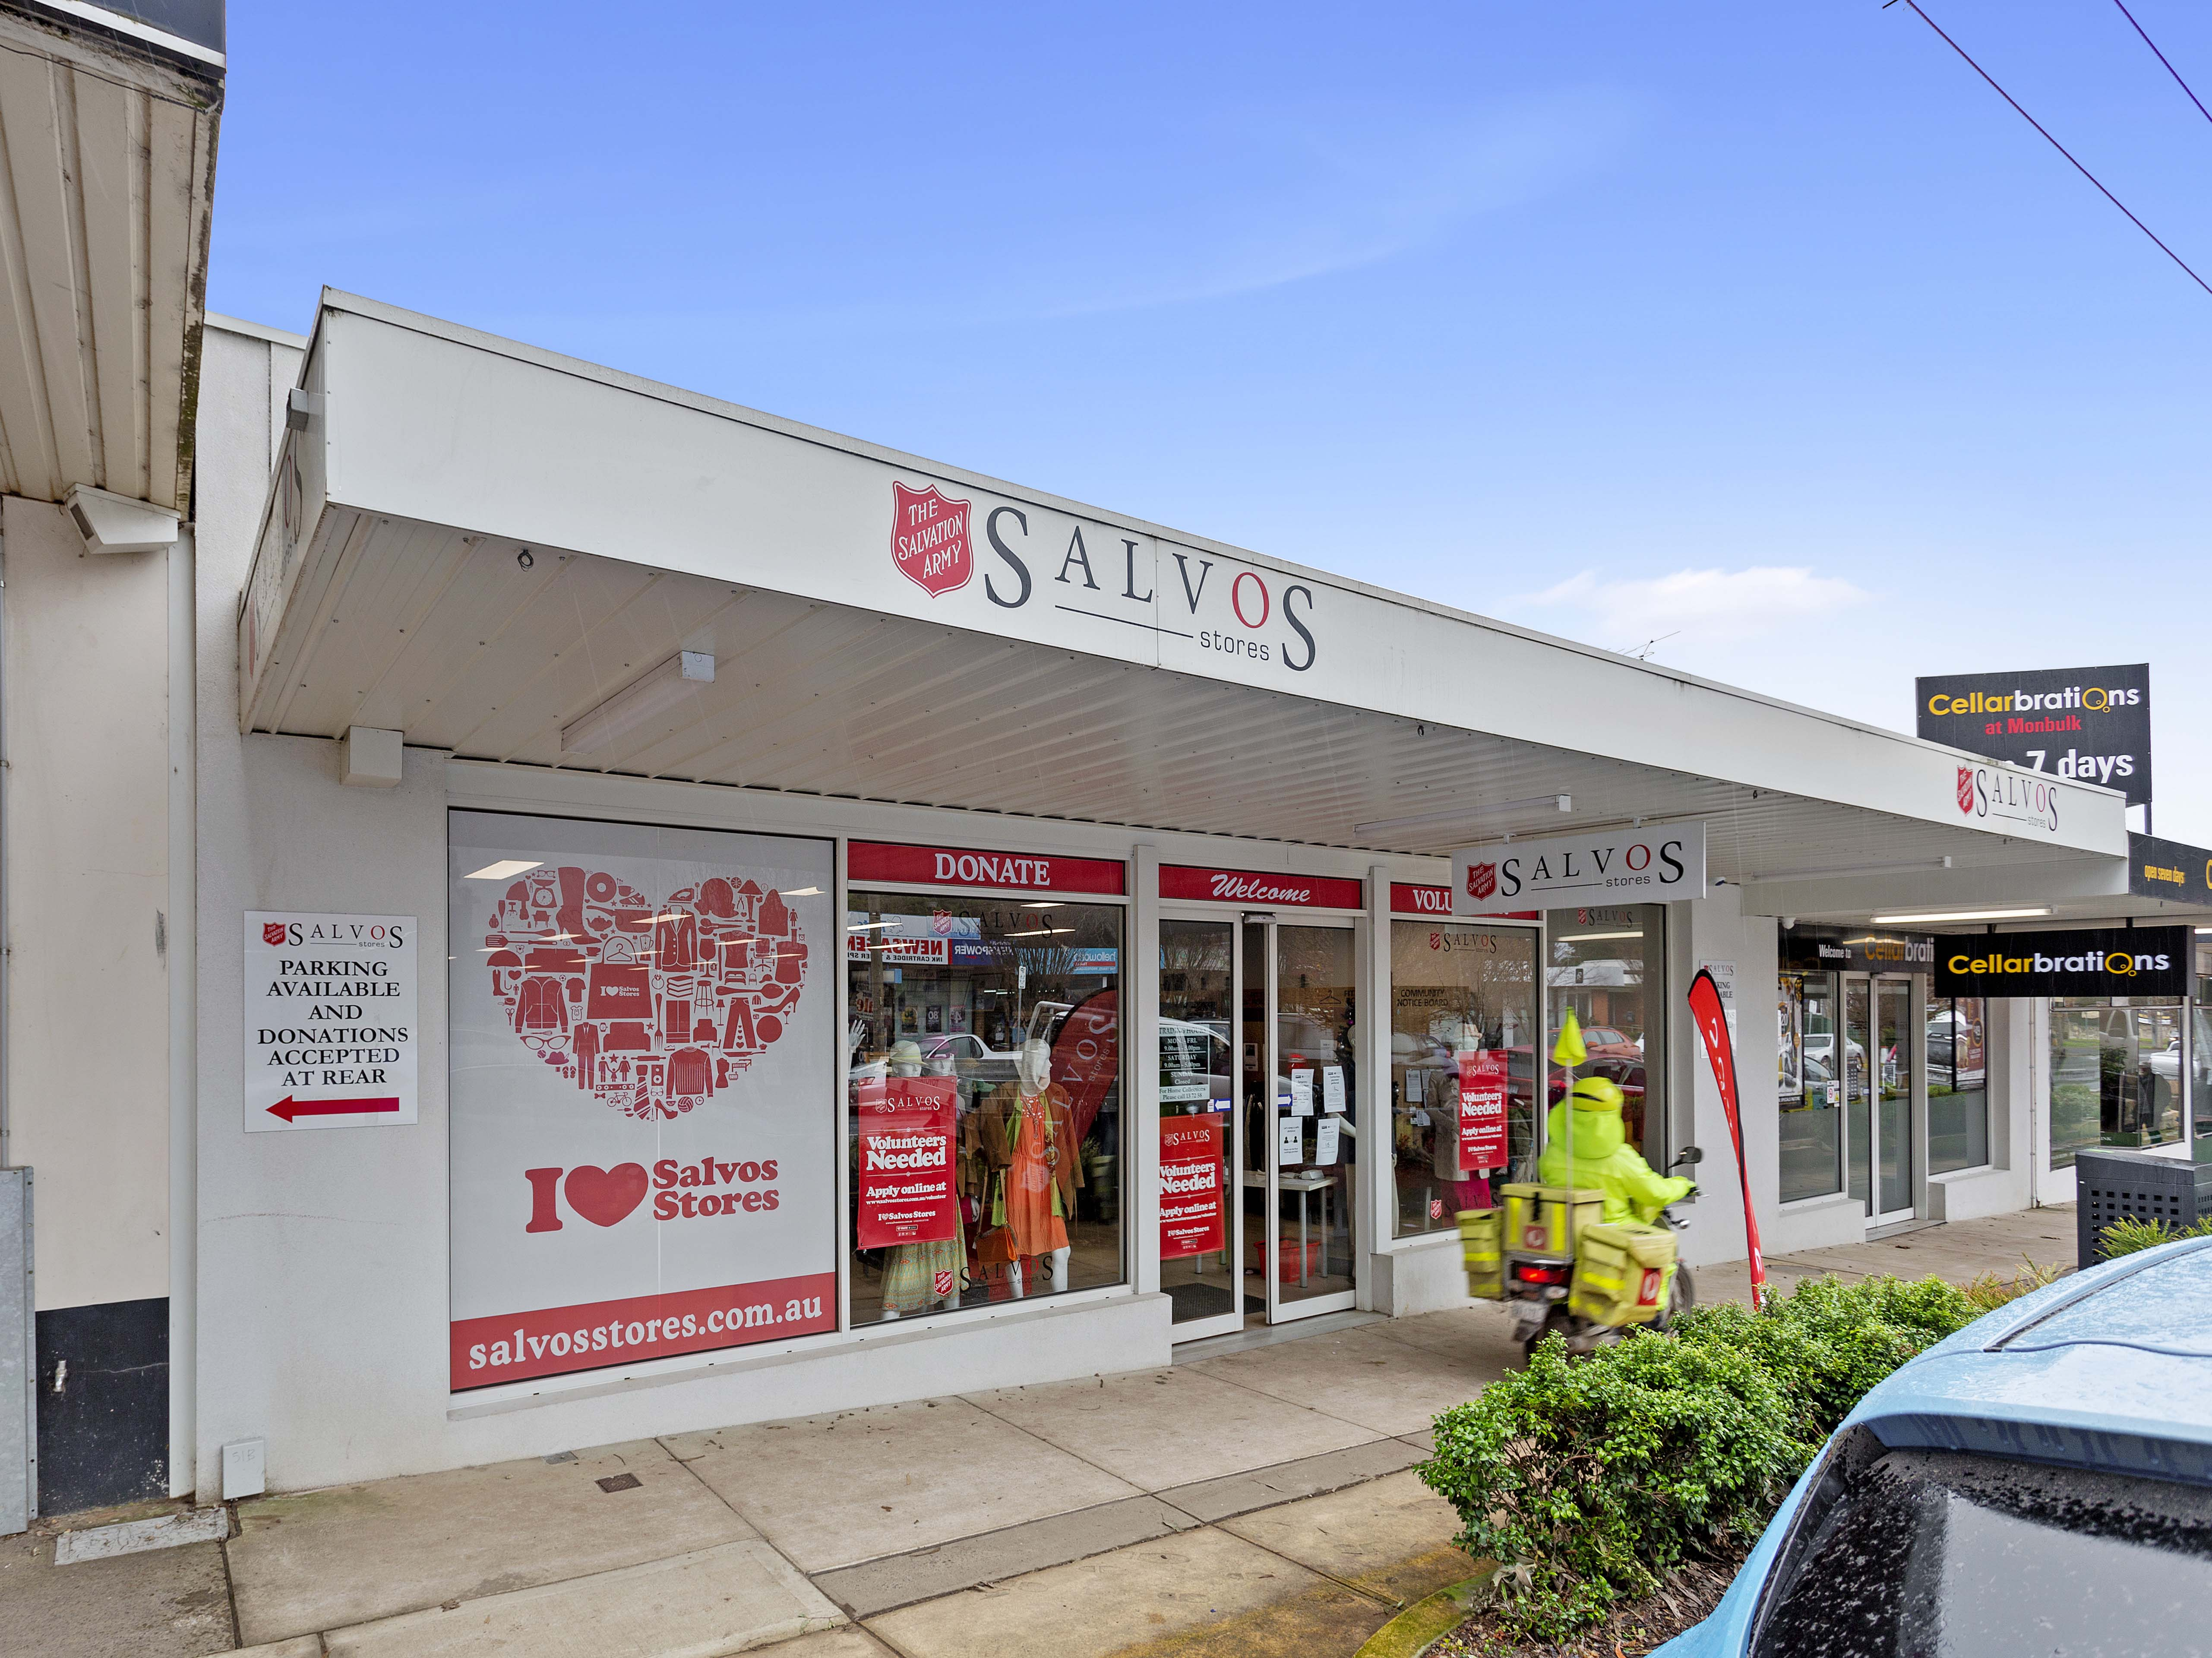 Securely Leased to Salvos Stores – Highly Sought After 'Essential Service' Investment